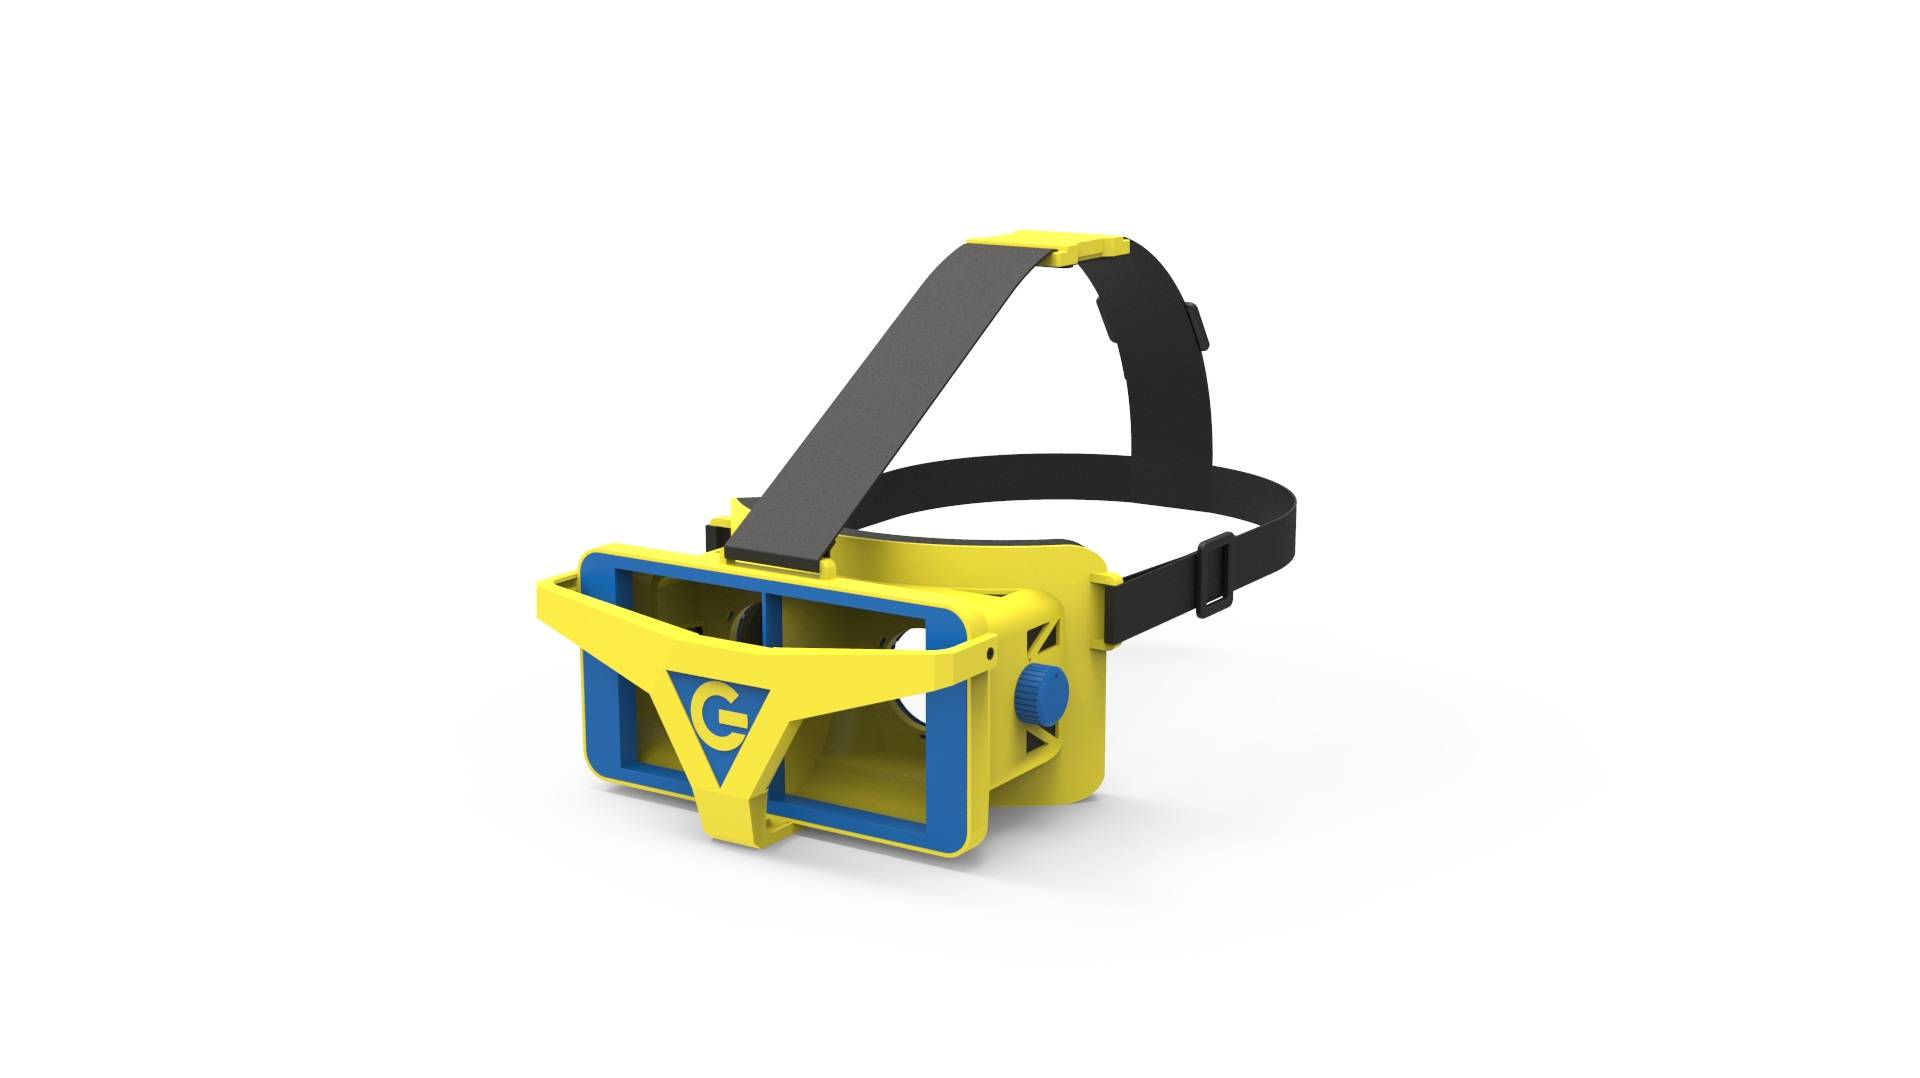 Most popular vr 3d glasses plastic Headset for vr 3d games and experience